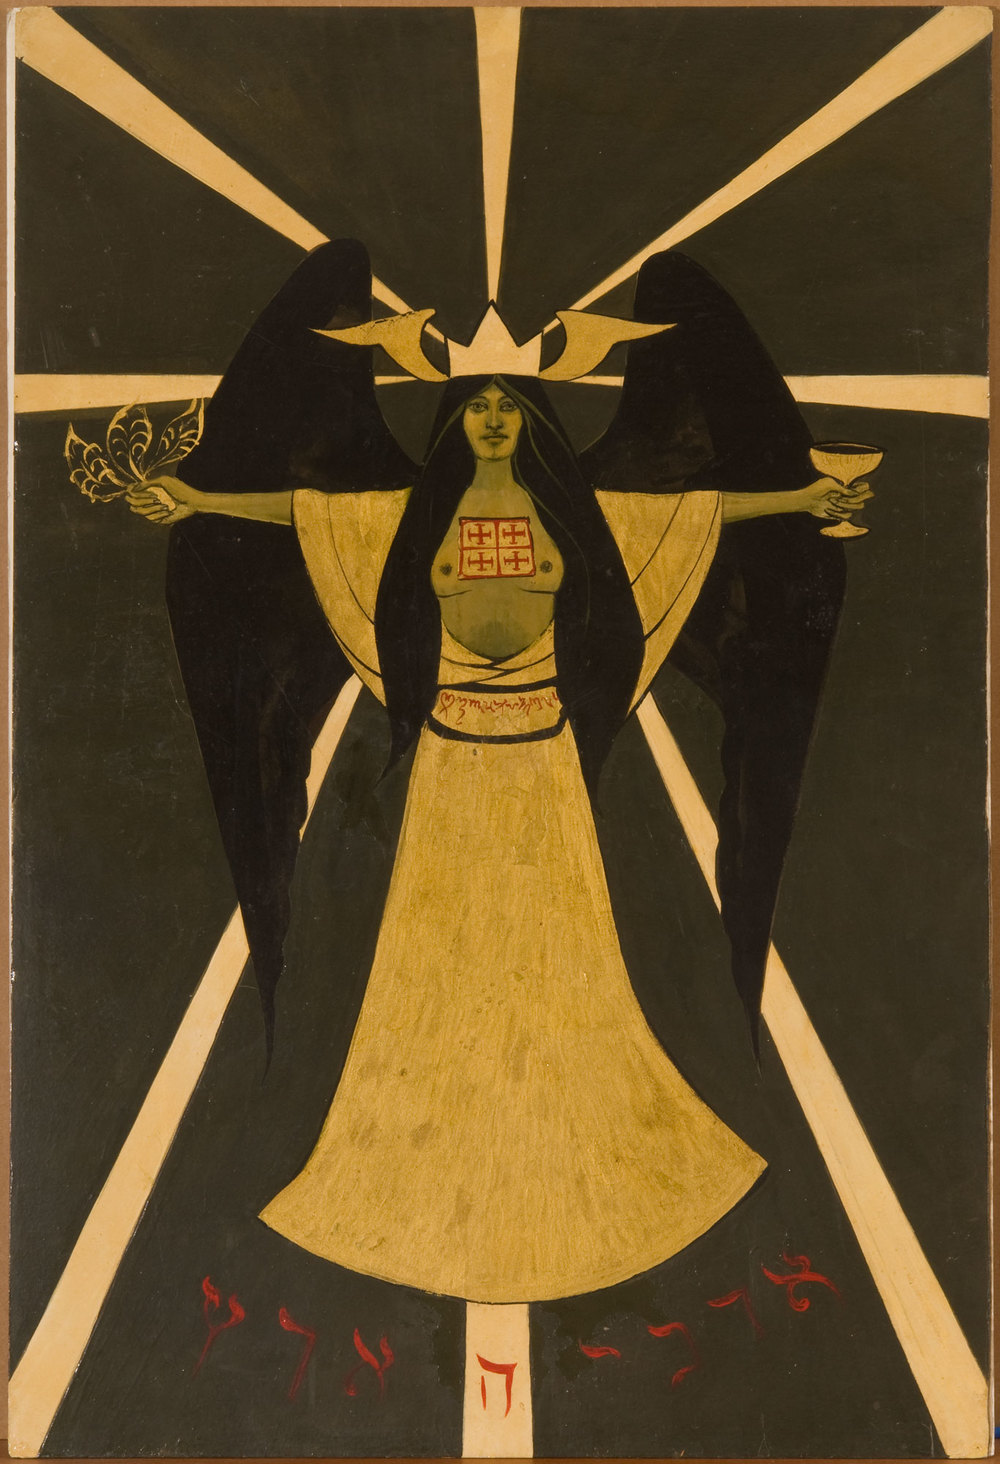 Holy Guardian Angel according to Aleister Crowley , Marjorie Cameron (1966)